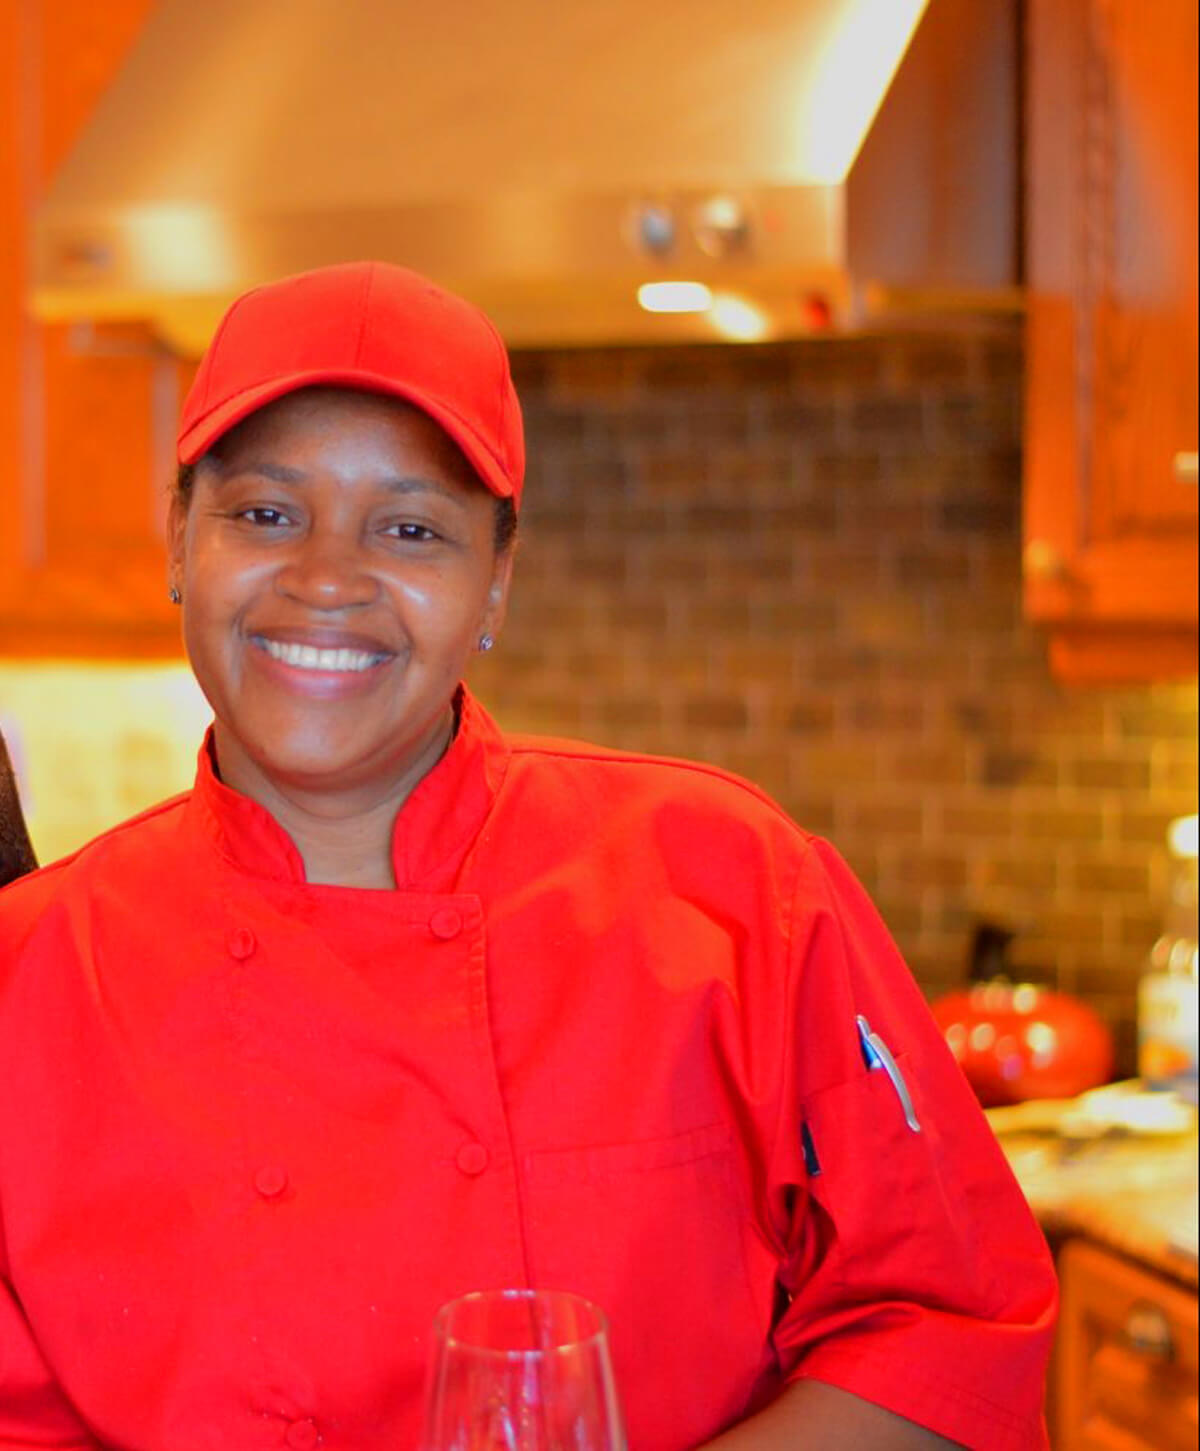 Latika, the brilliant chef behind Taste of the Islands